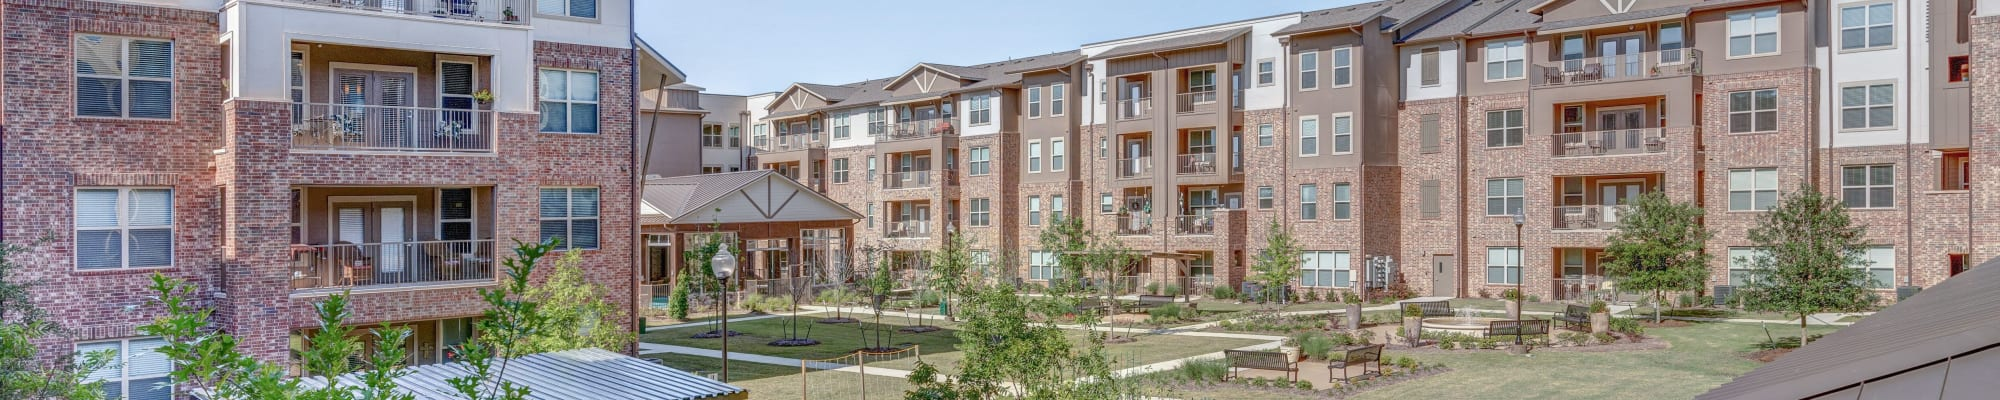 Floor plans at Watercrest at Katy in Katy, Texas